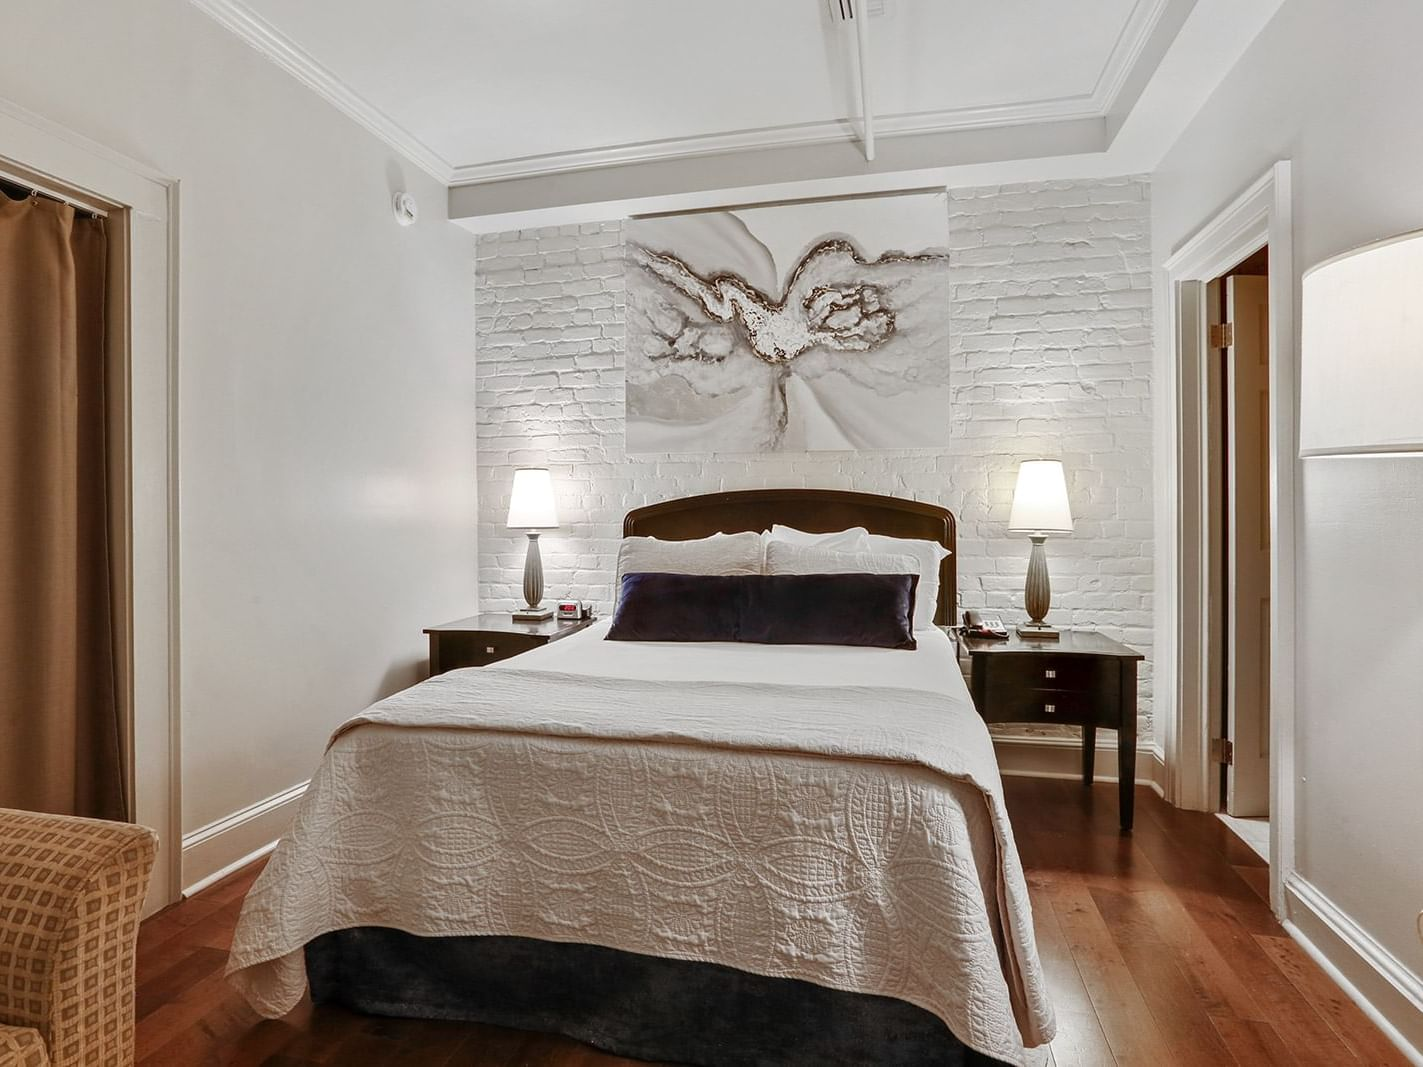 Intimate Queen Bed Room with one bed at La Galerie Hotel